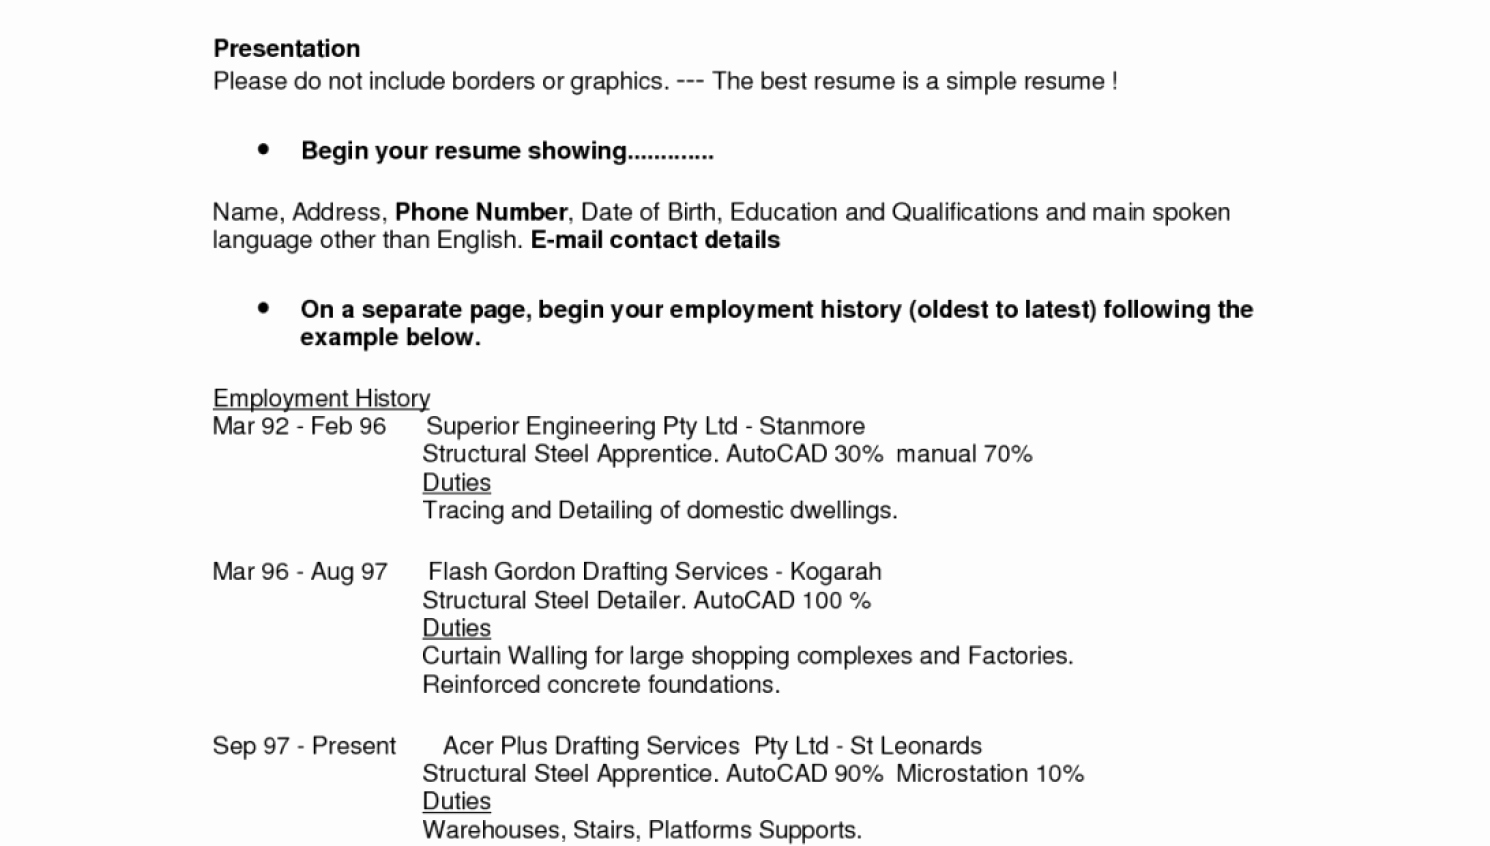 Need Help to Do My Resume